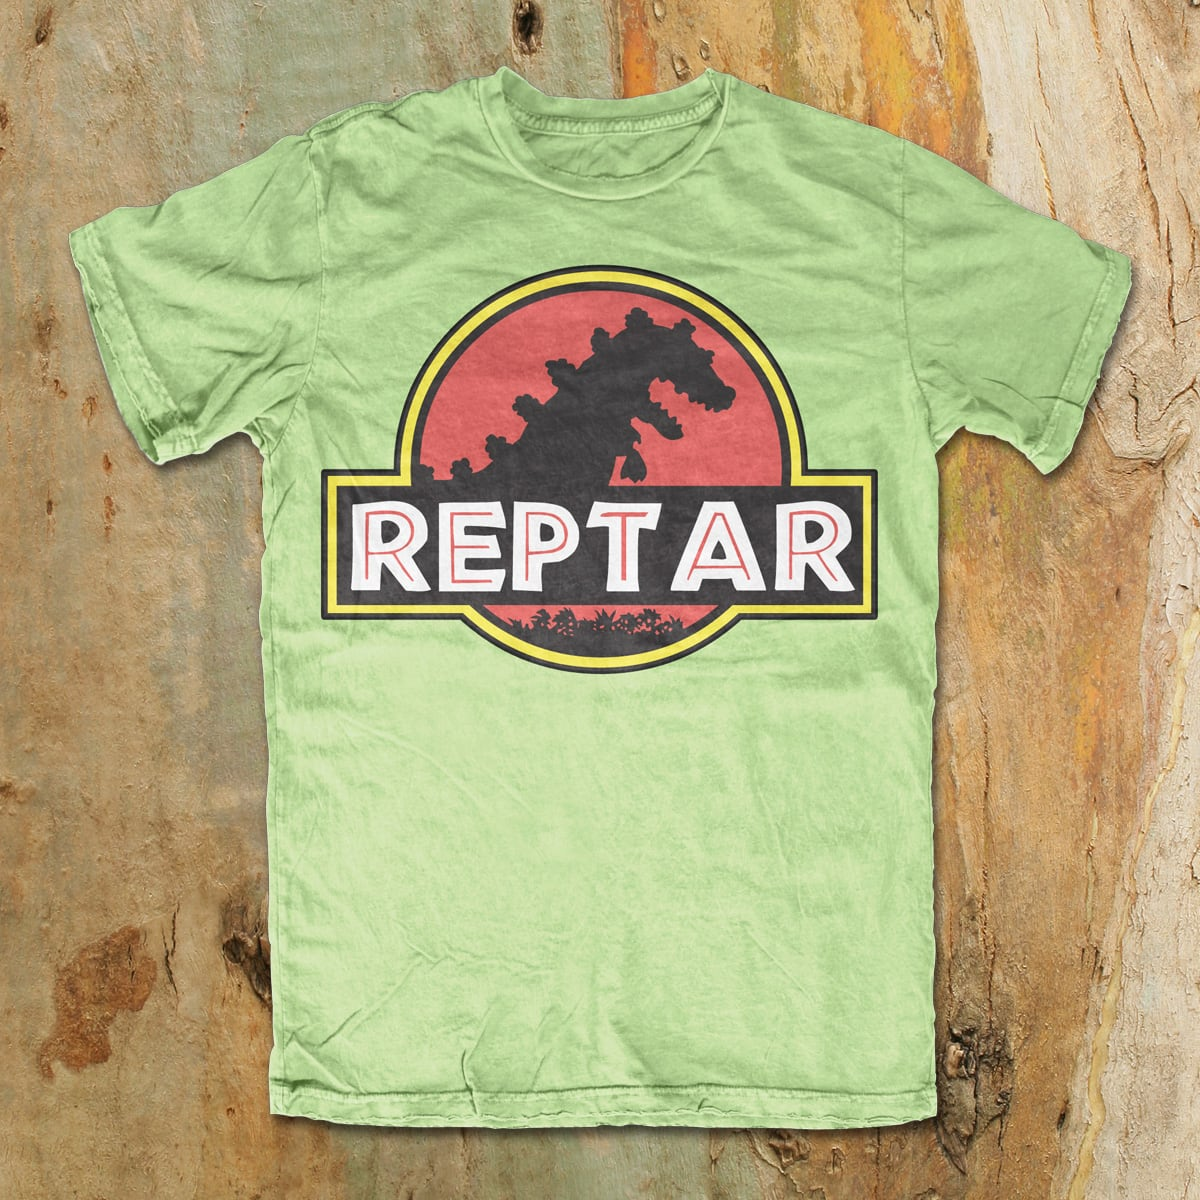 Reptar by mikmik2k4 on Threadless